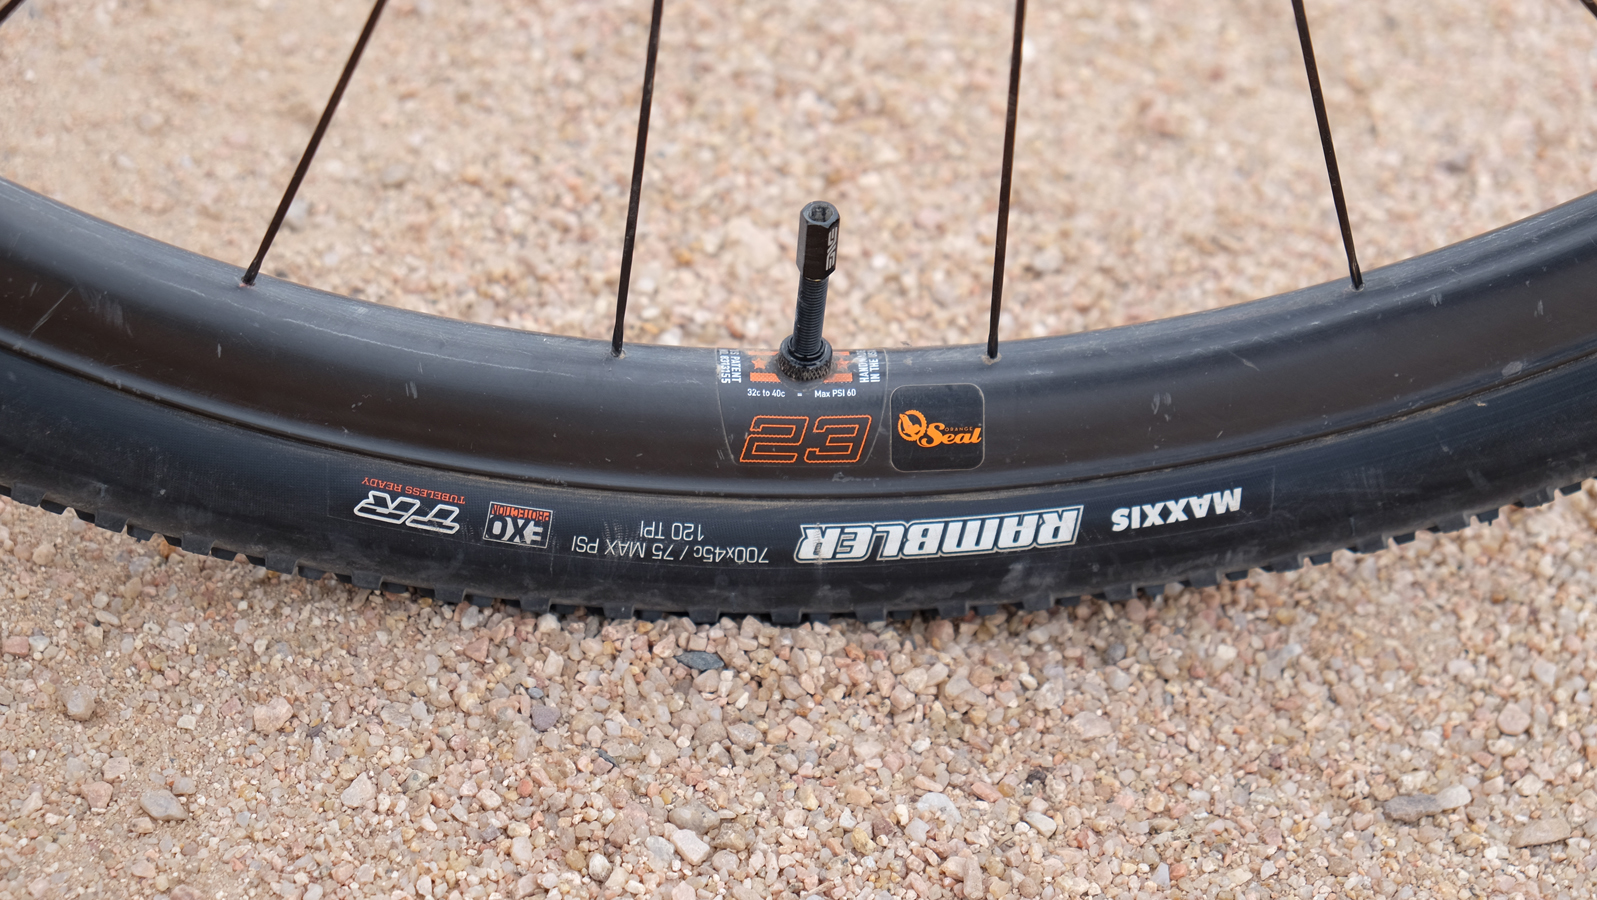 Rusch rolls on ENVE G23 carbon rims with Maxxis 700x40 tires. Orange Seal keeps punctures at bay.